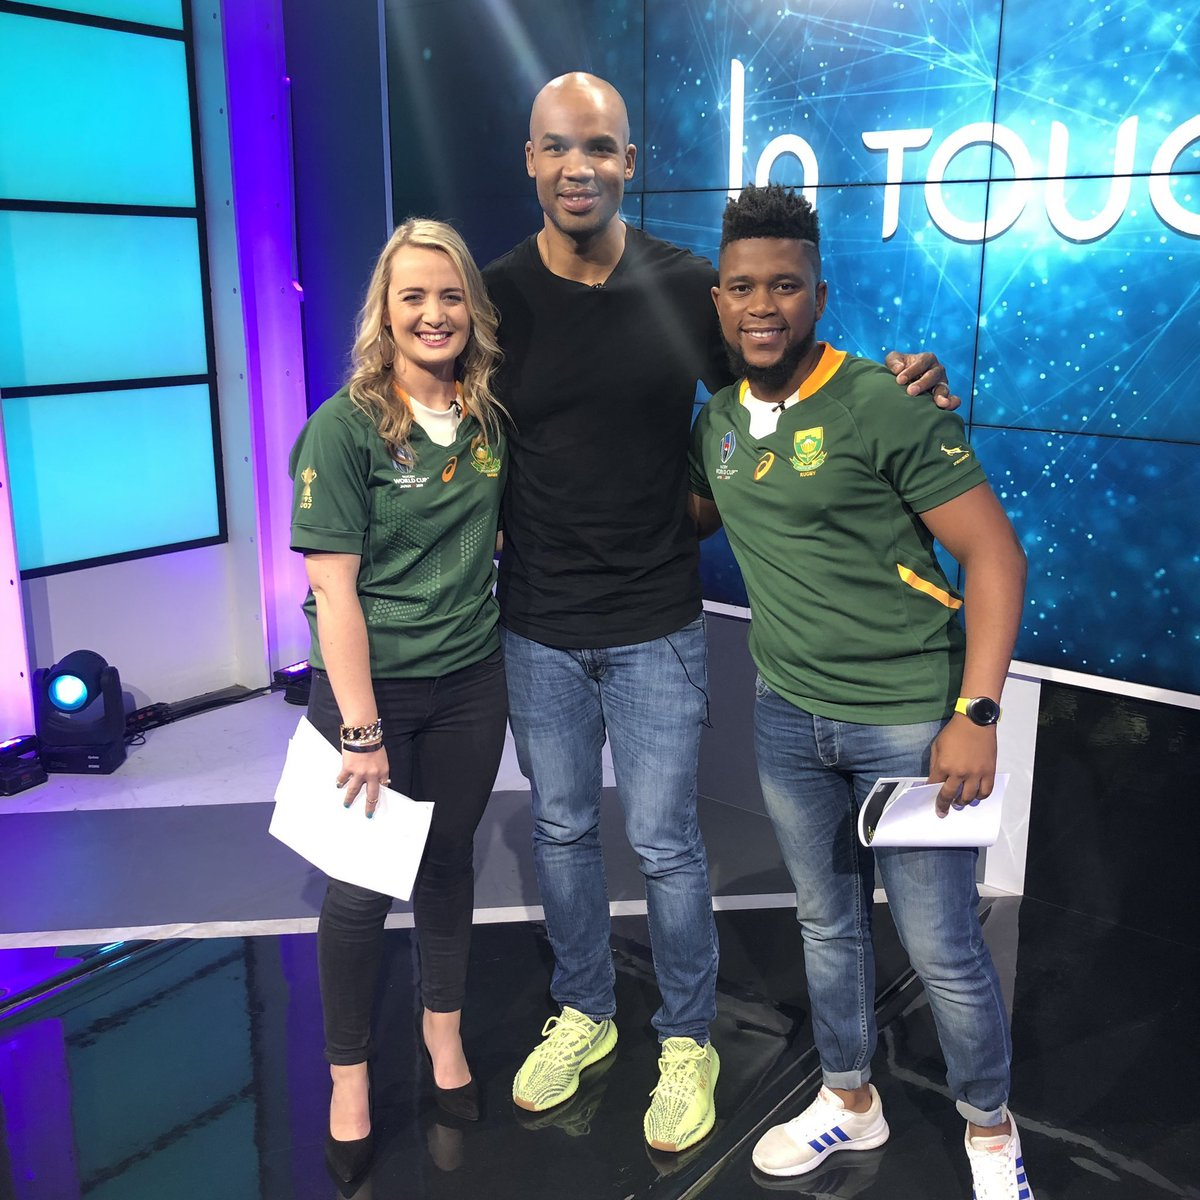 Really enjoyed being on today's #InTouch show. Thanks to hosts @catolouw and @SamLudidi for making me feel at home 😉